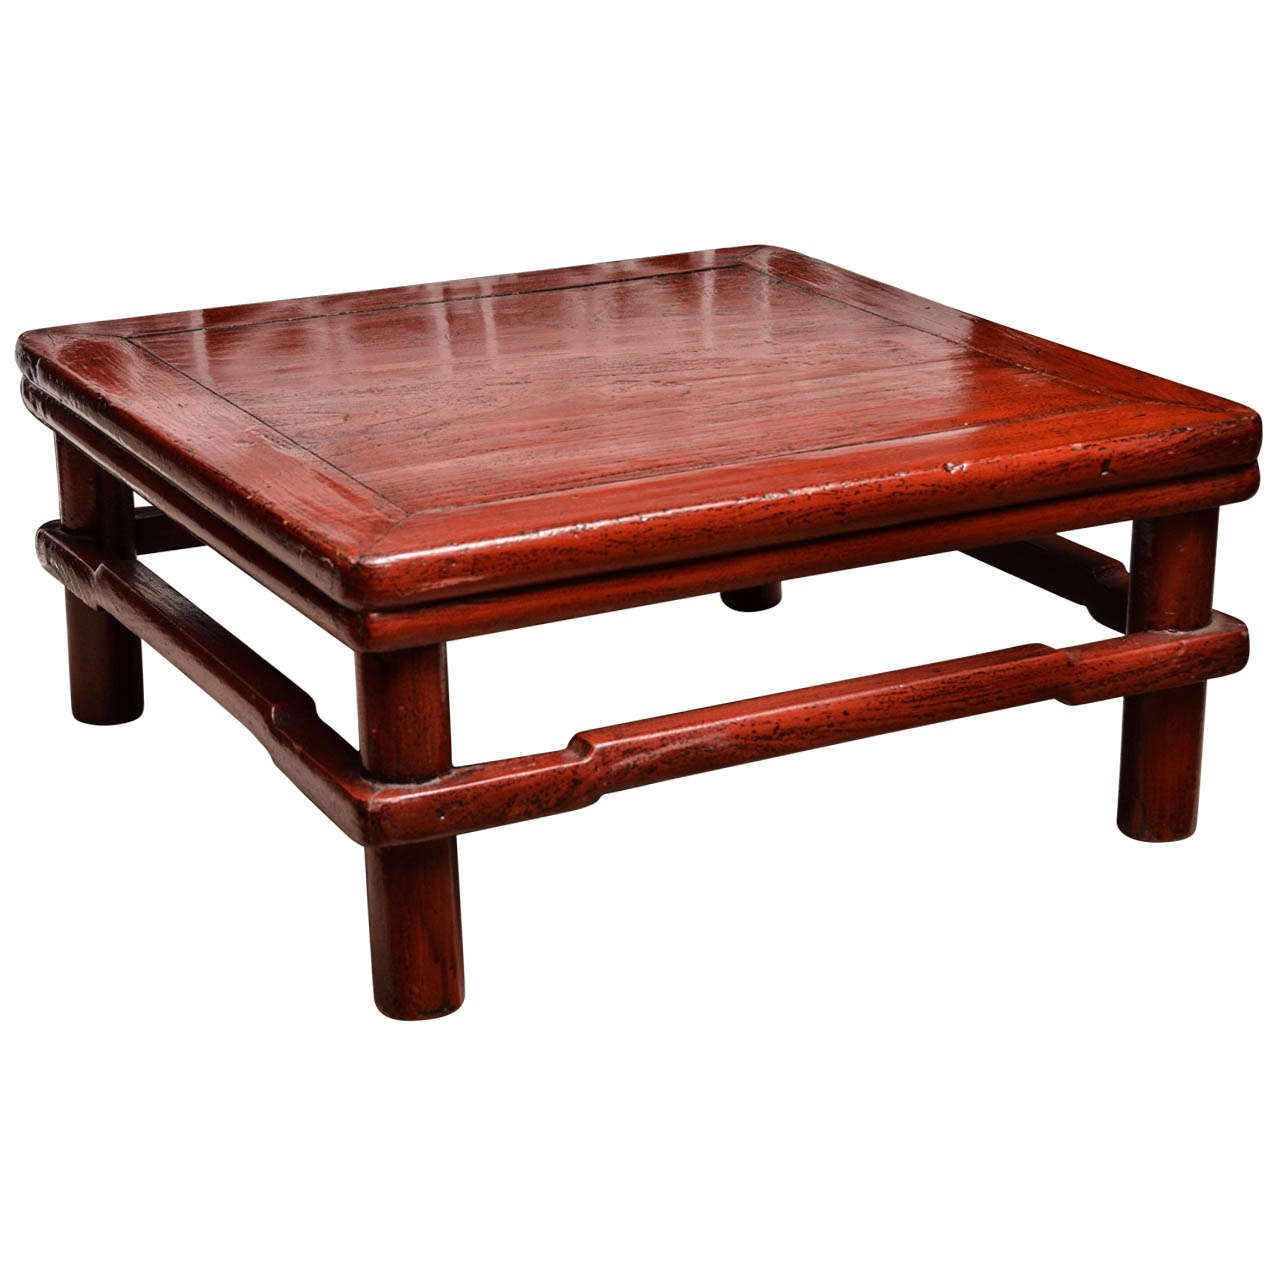 Turn of the Century Qing Dynasty Red Lacquered Southern Elm Kang Table